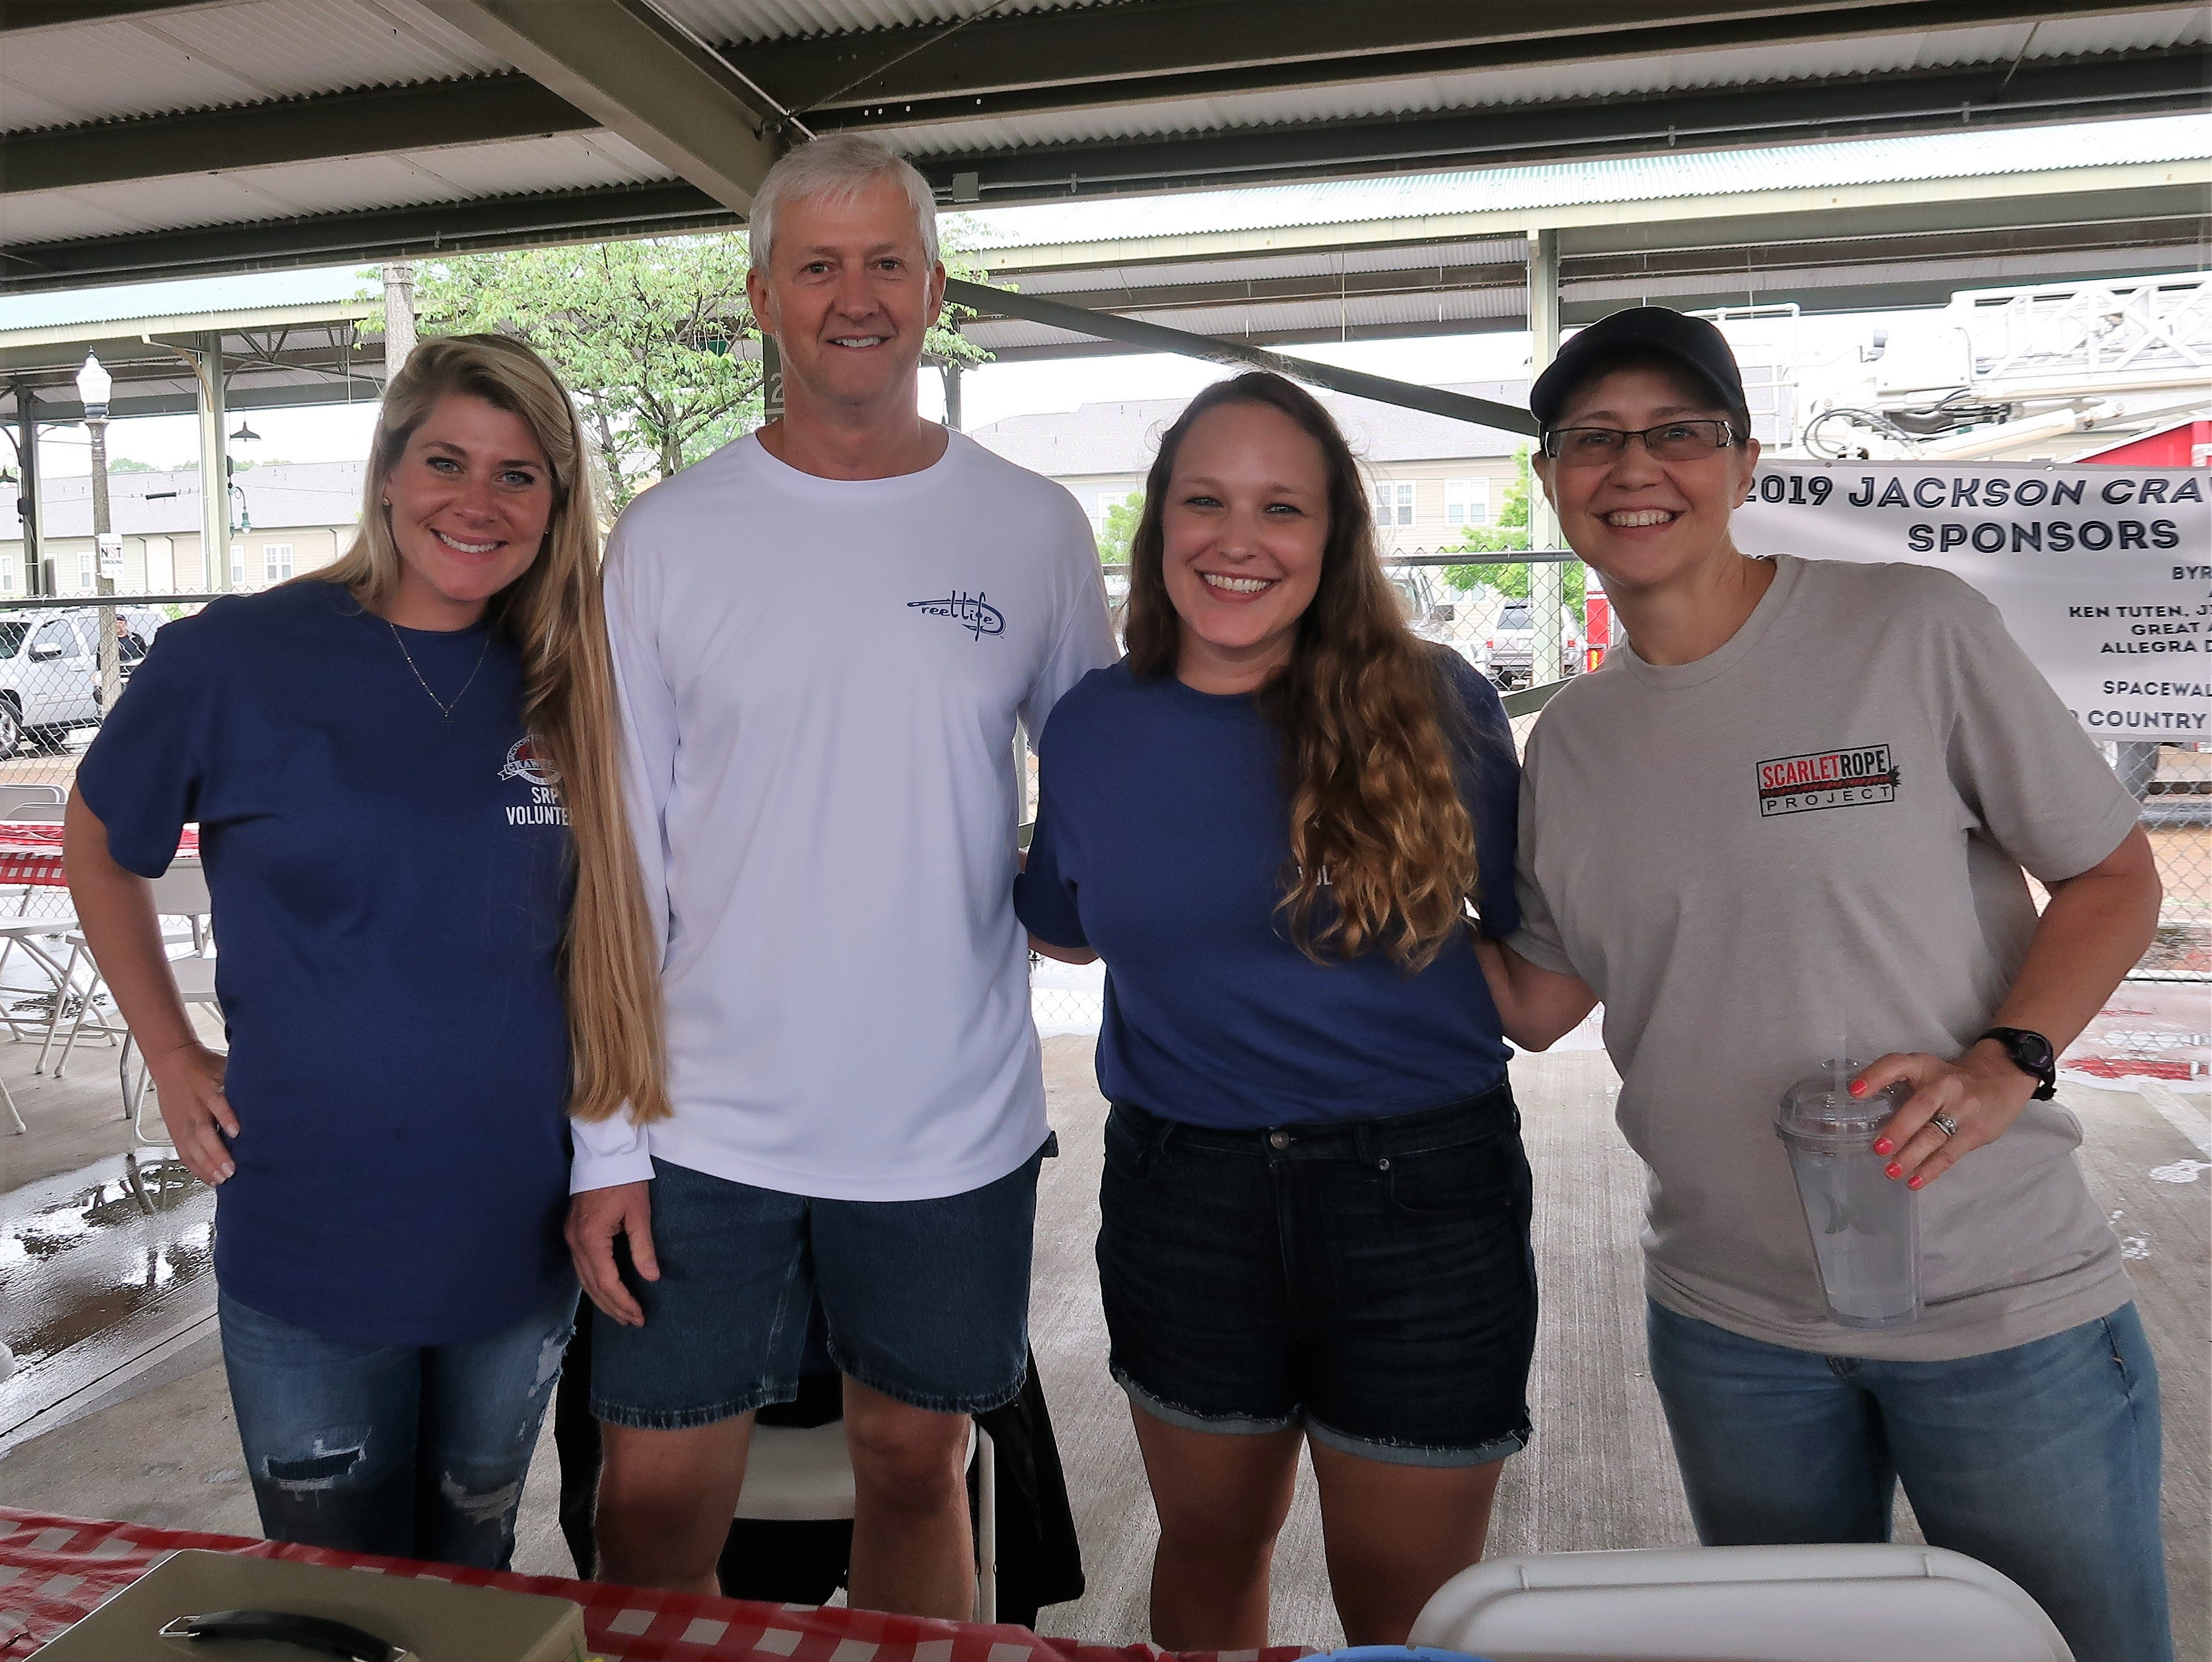 Community members ate 2,500 pounds of crawfish at the Second Annual Crawfest fundraiser for the Scarlet Rope Project at the West Tennessee Farmer's Market in Jackson on May 4, 2019.